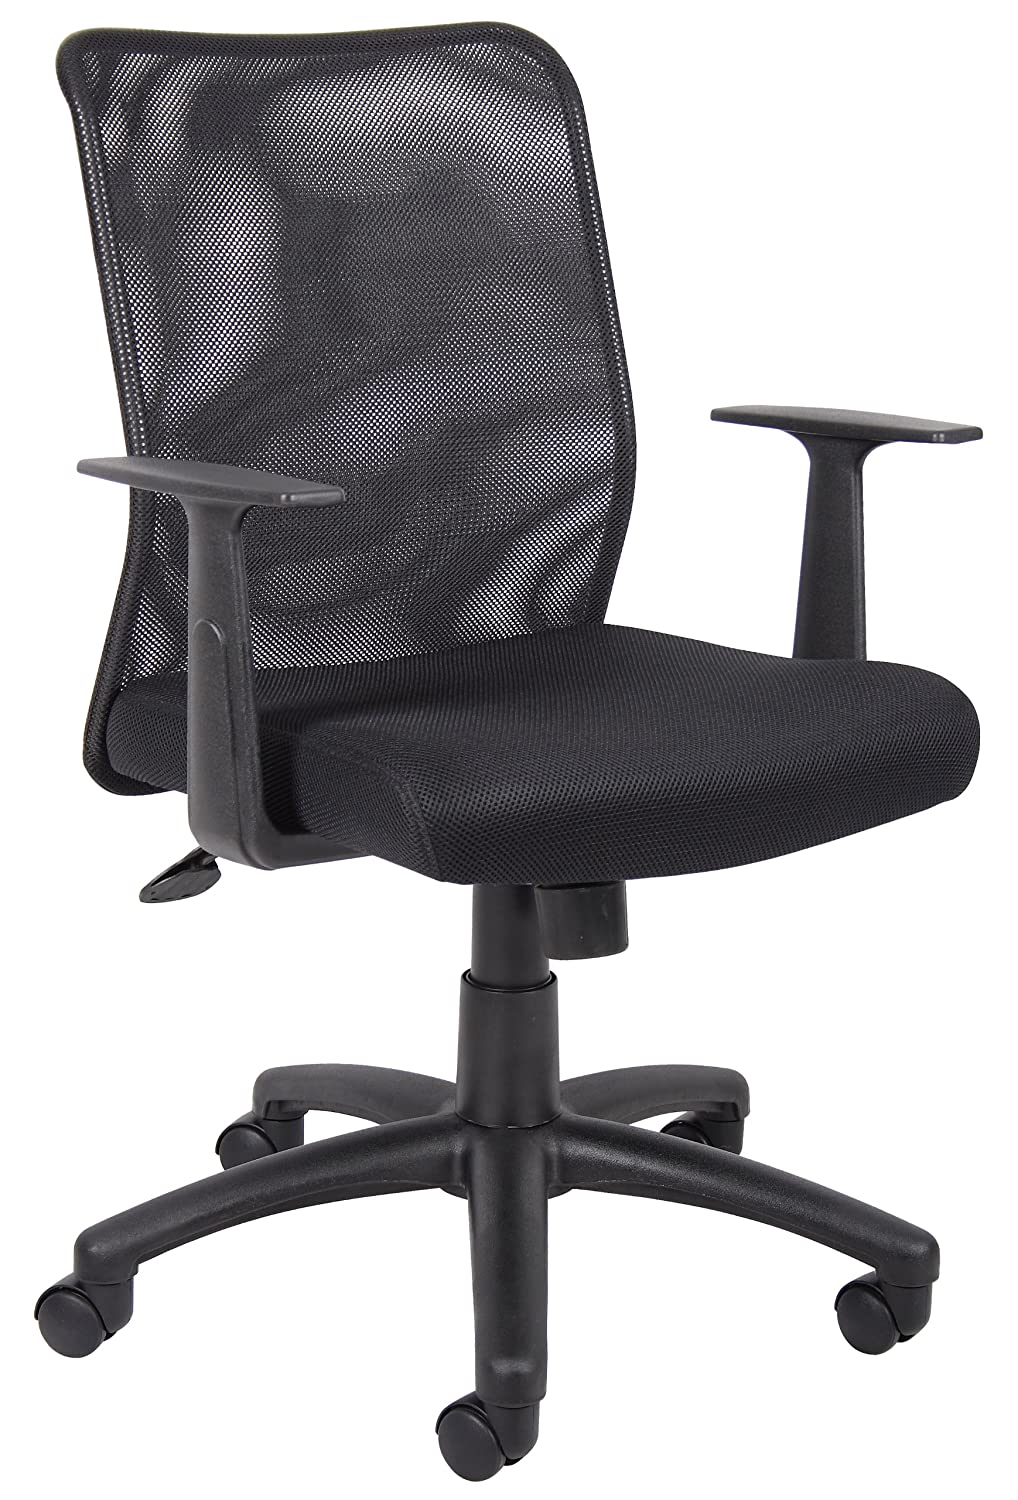 Boss Budget Mesh Task Chair W/T-Arms Boss Office Products B6106 1135